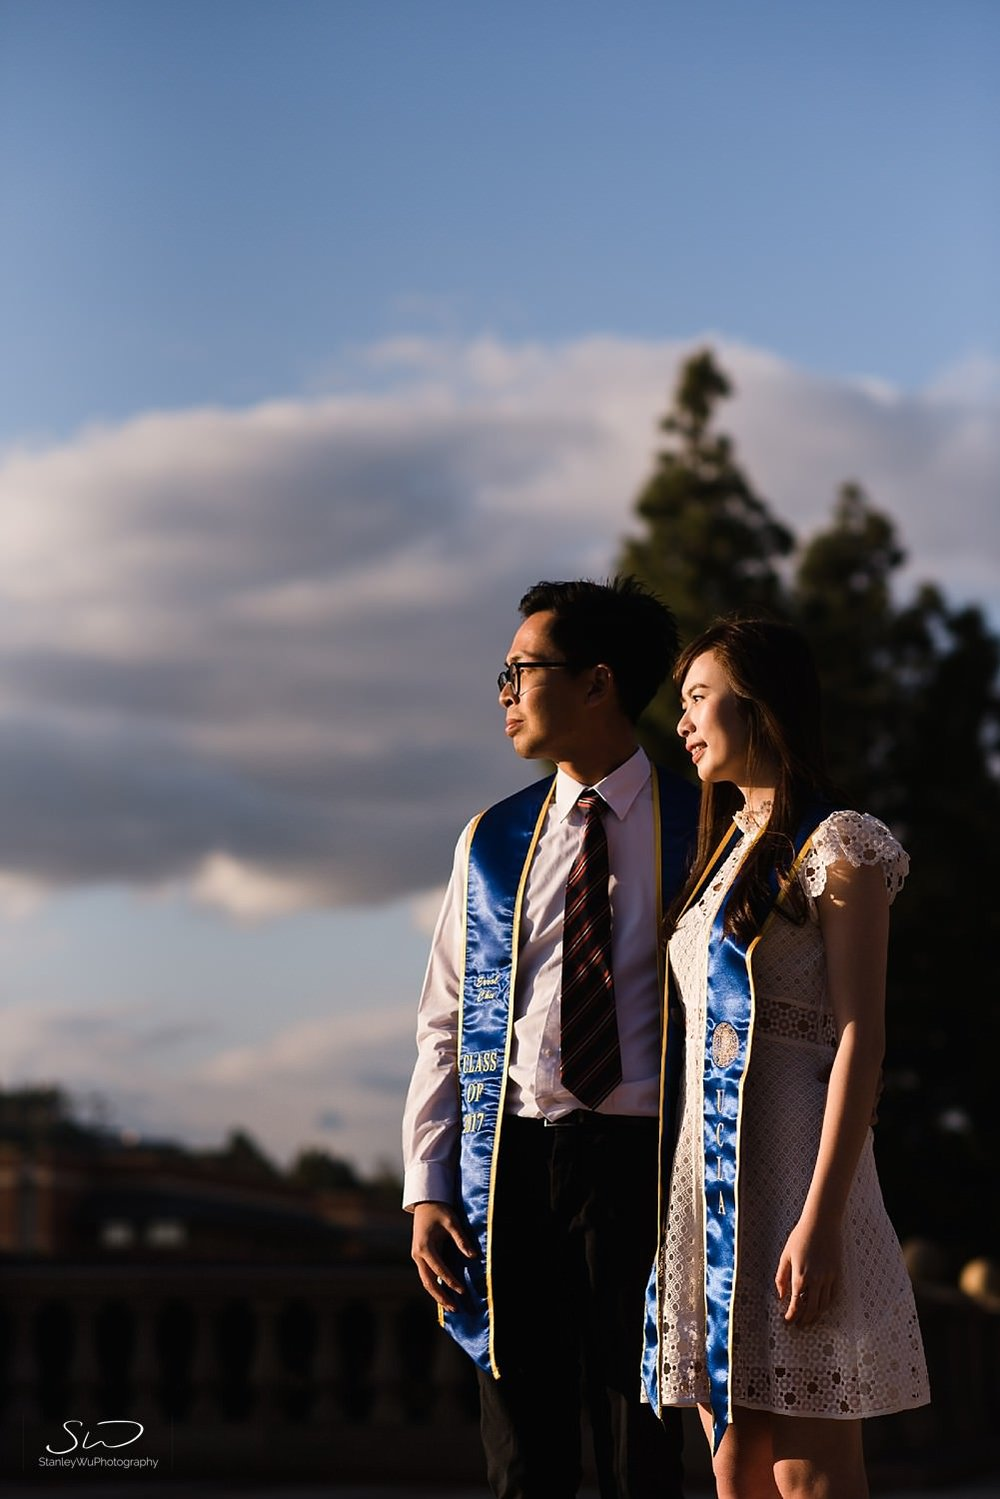 los-angeles-ucla-graduation-senior-portraits_0023.jpg